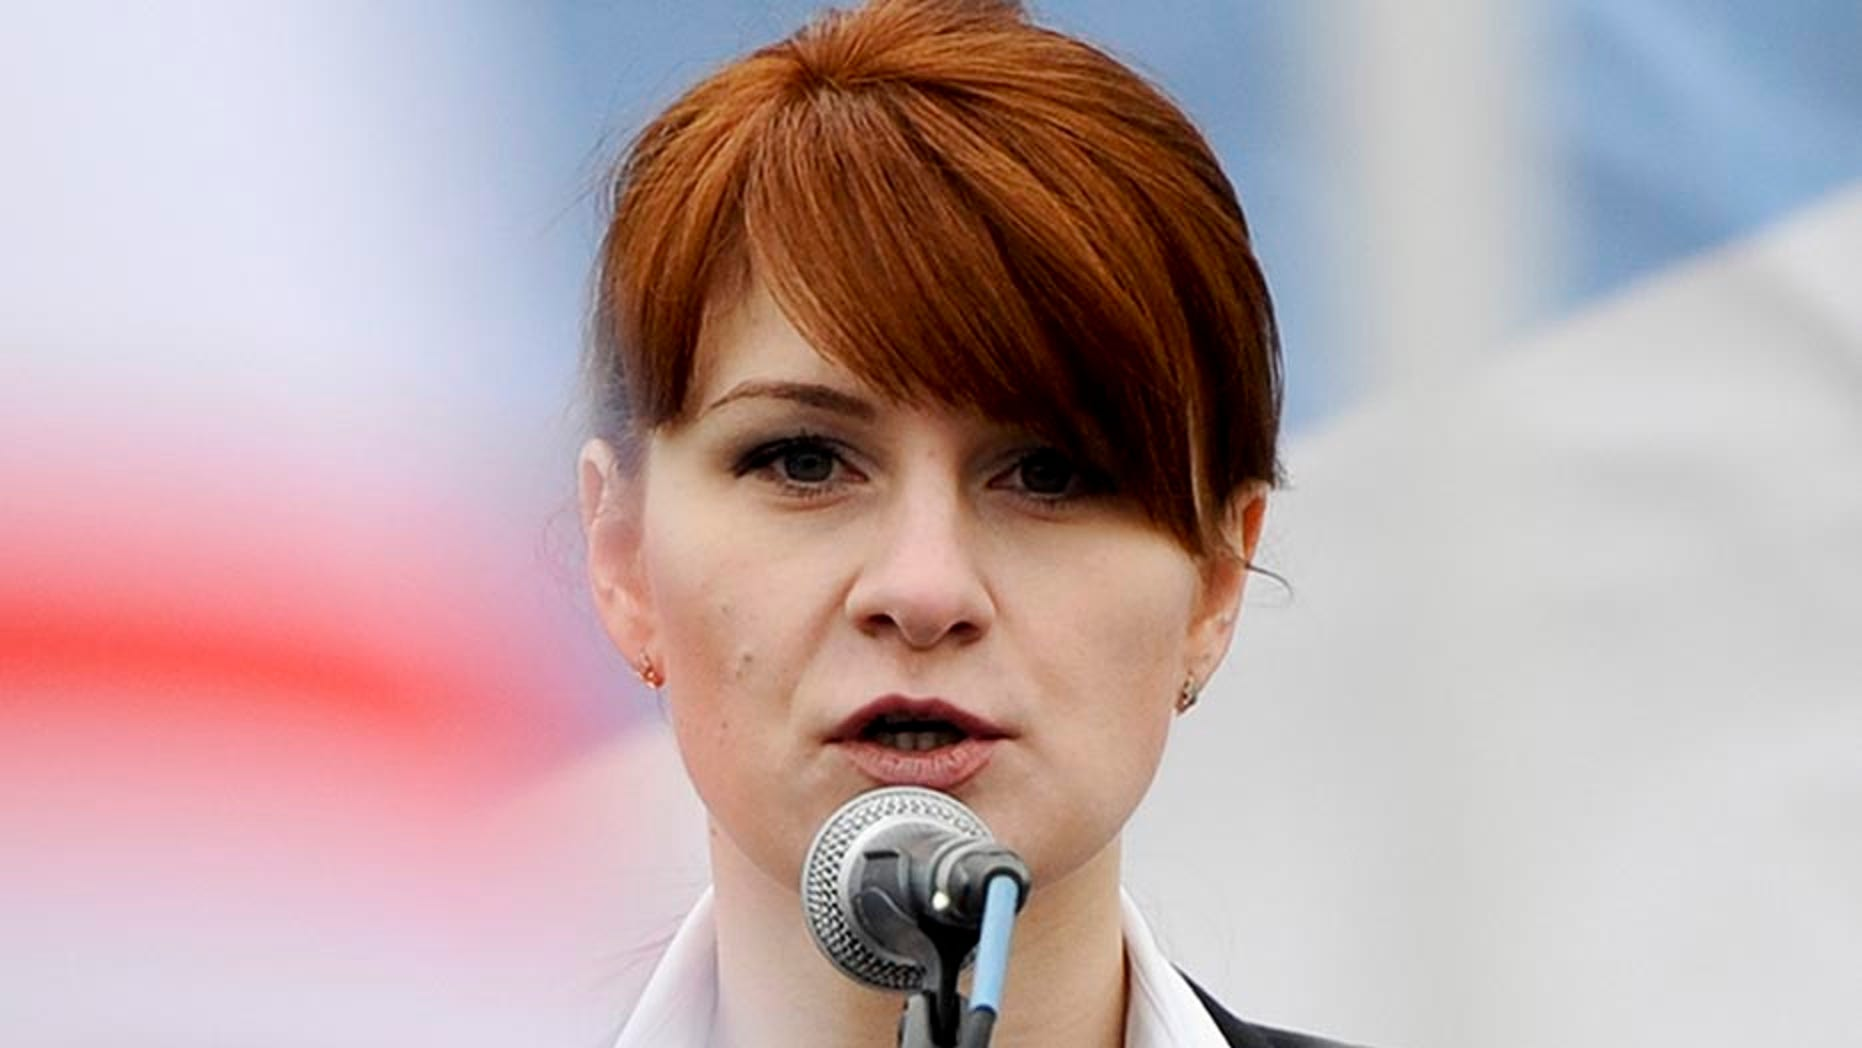 Maria Butina, in 2013, speaks to a crowd during a rally in support of legalizing the possession of handguns in Moscow, Russia.